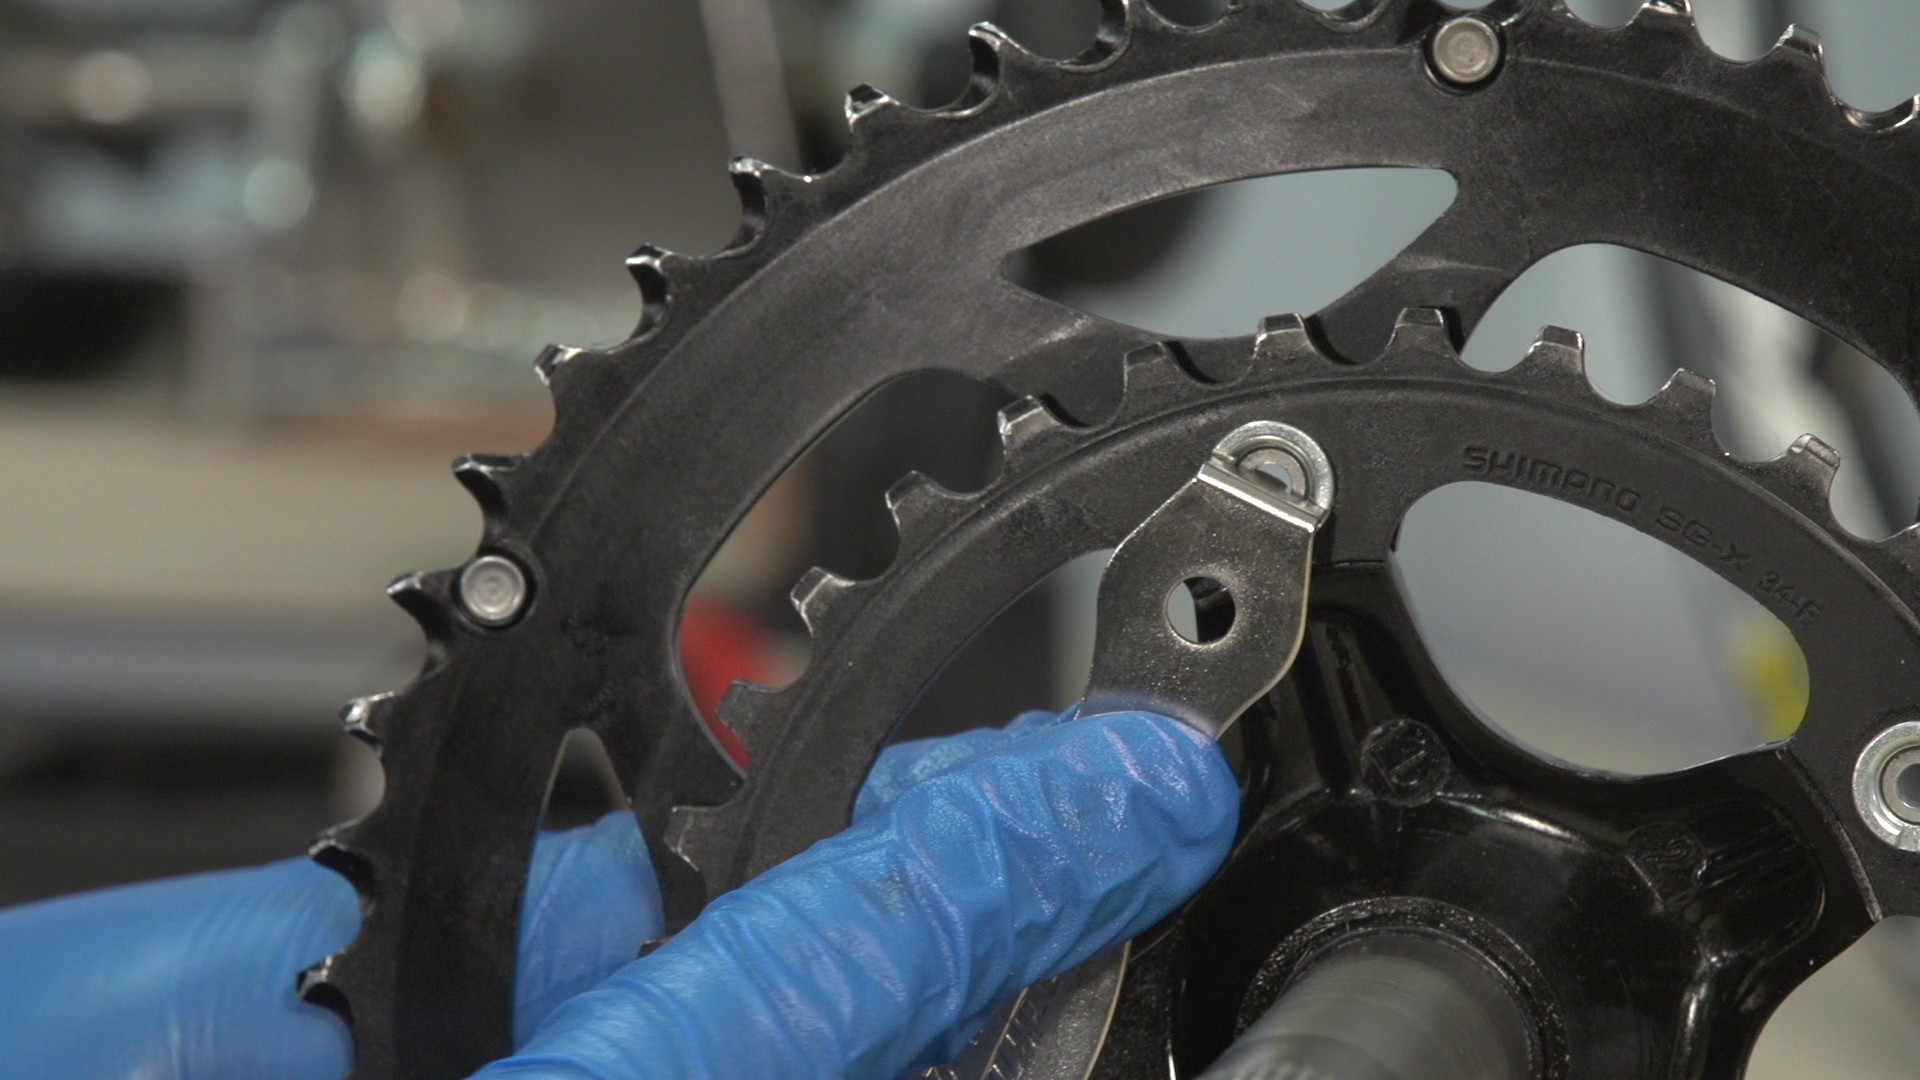 A nut wrench tool avoids the nuts slipping when screwing or unscrewing the chainring bolts